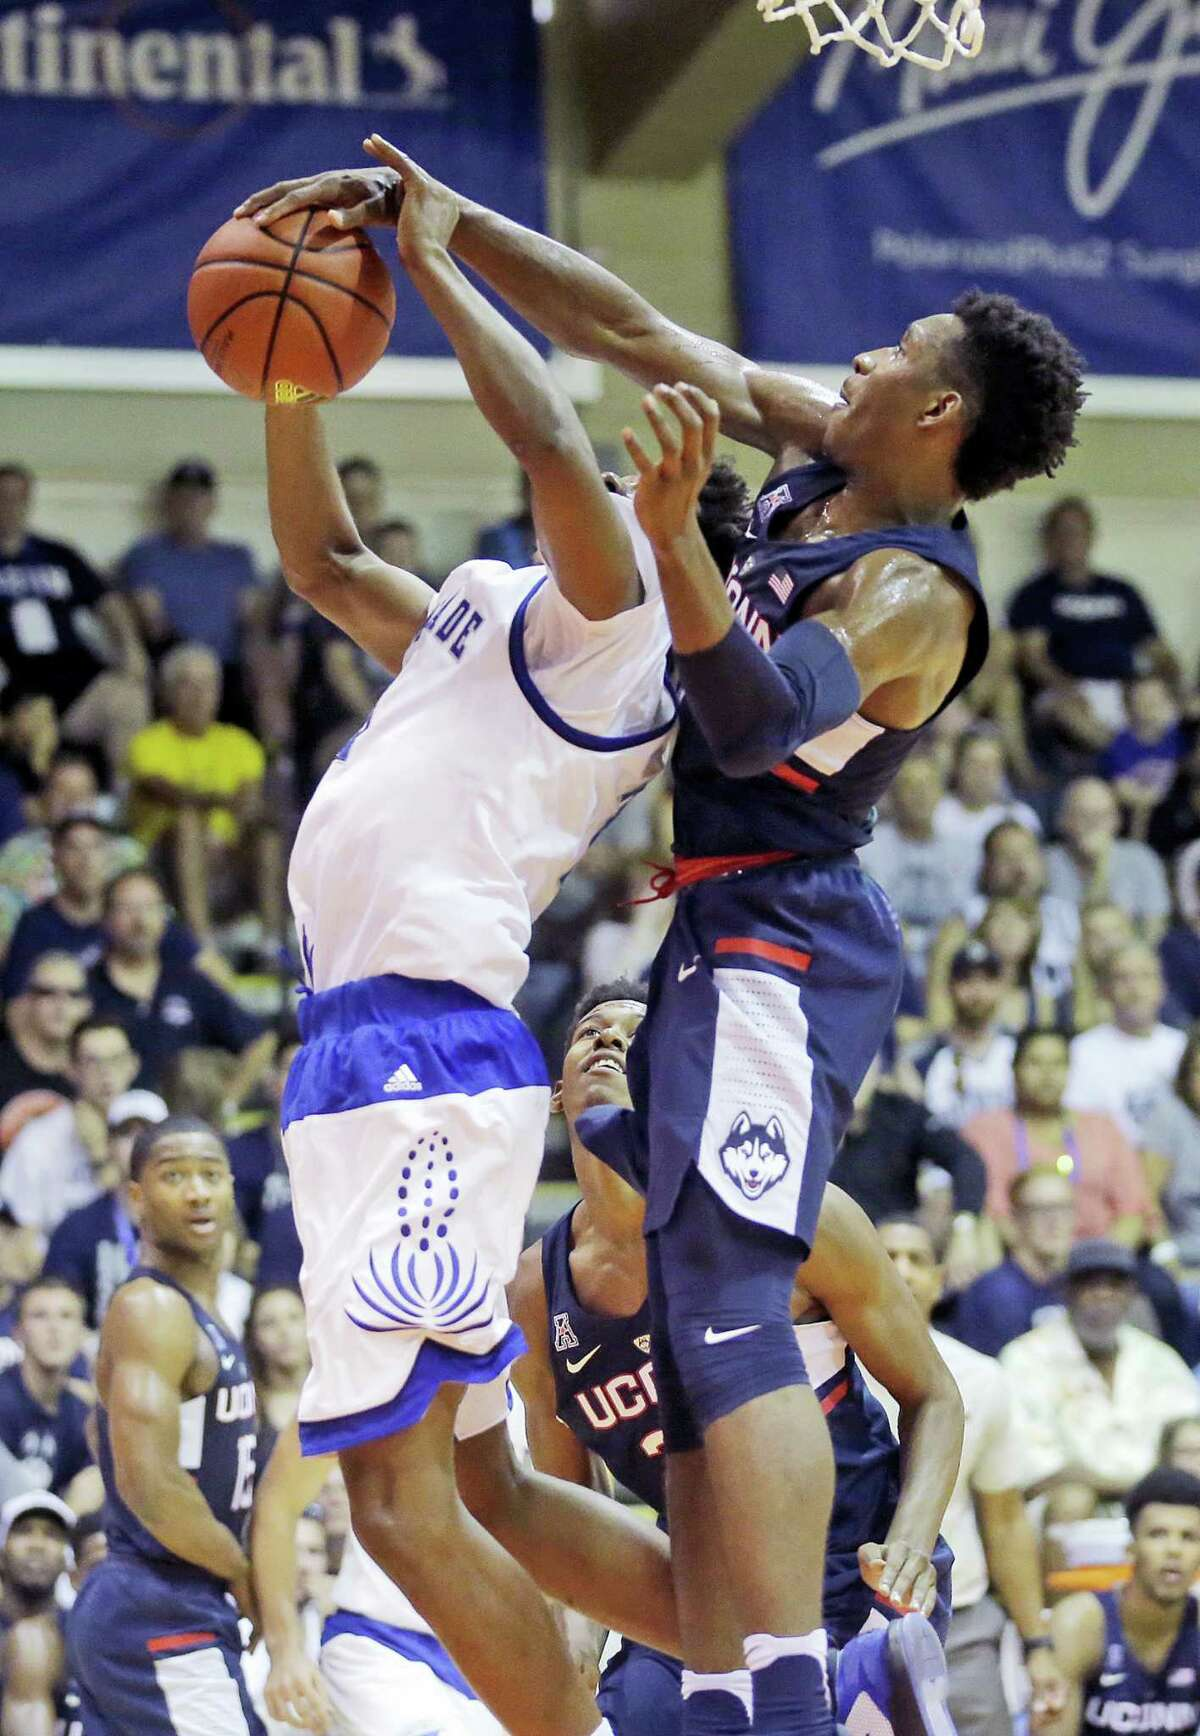 UConn guard Christian Vital, right, blocks the shot of Chaminade guard Rohndell Goodwin, left, in the first half during the Maui Invitational Tuesday.